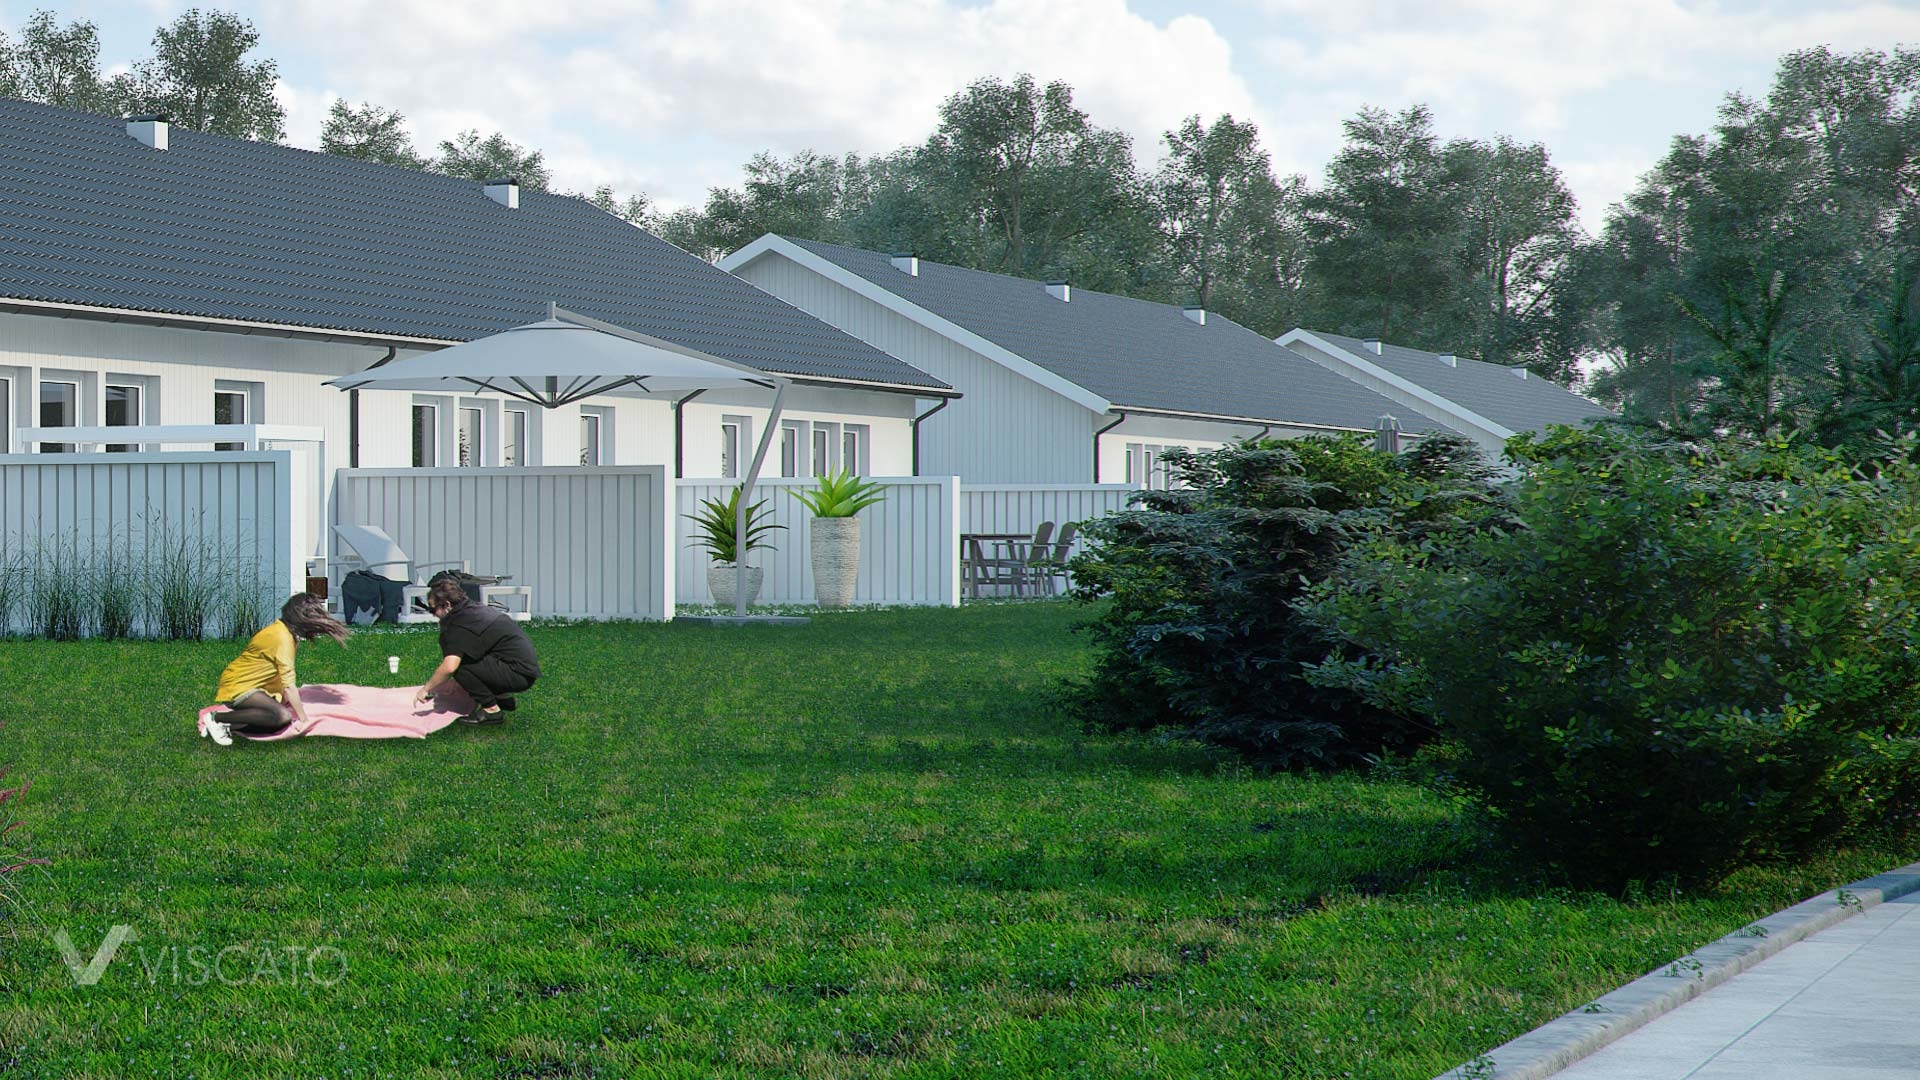 3d Exterior Visualization of settlement in Knislinge, Sweden- garden side view